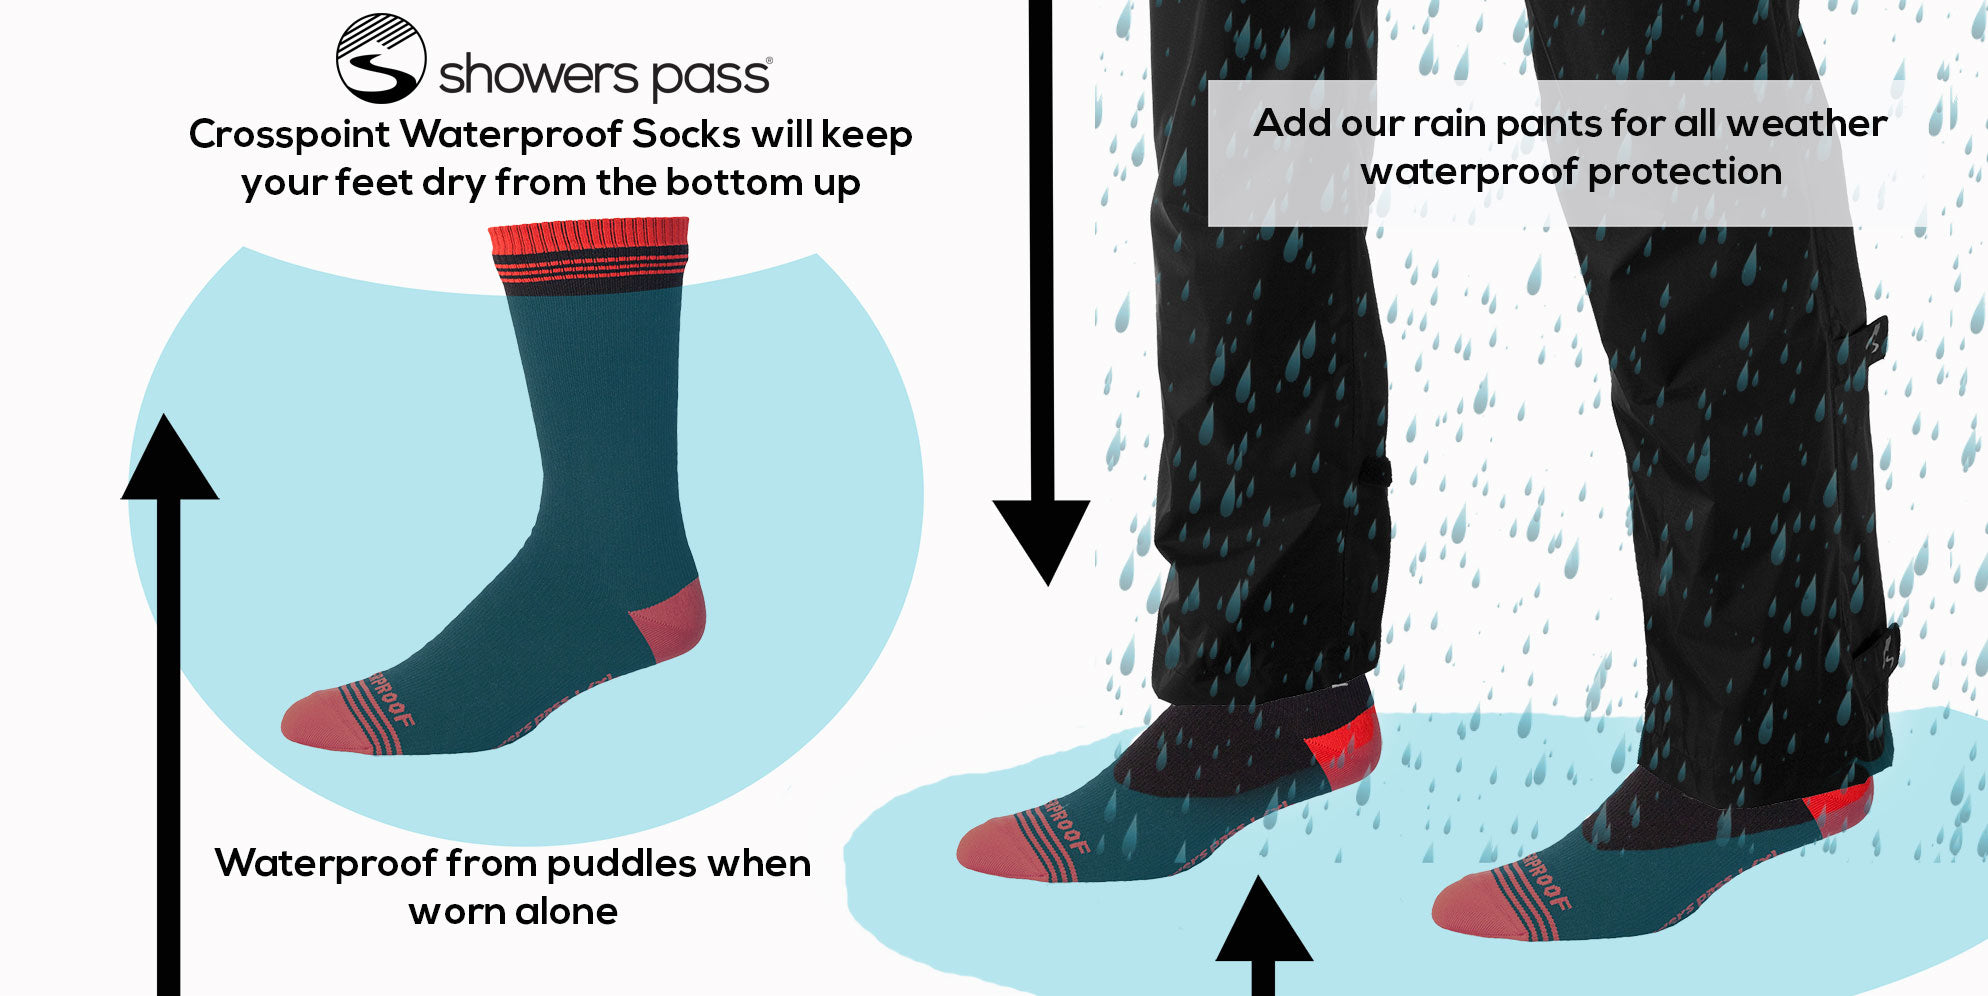 How waterproof socks work